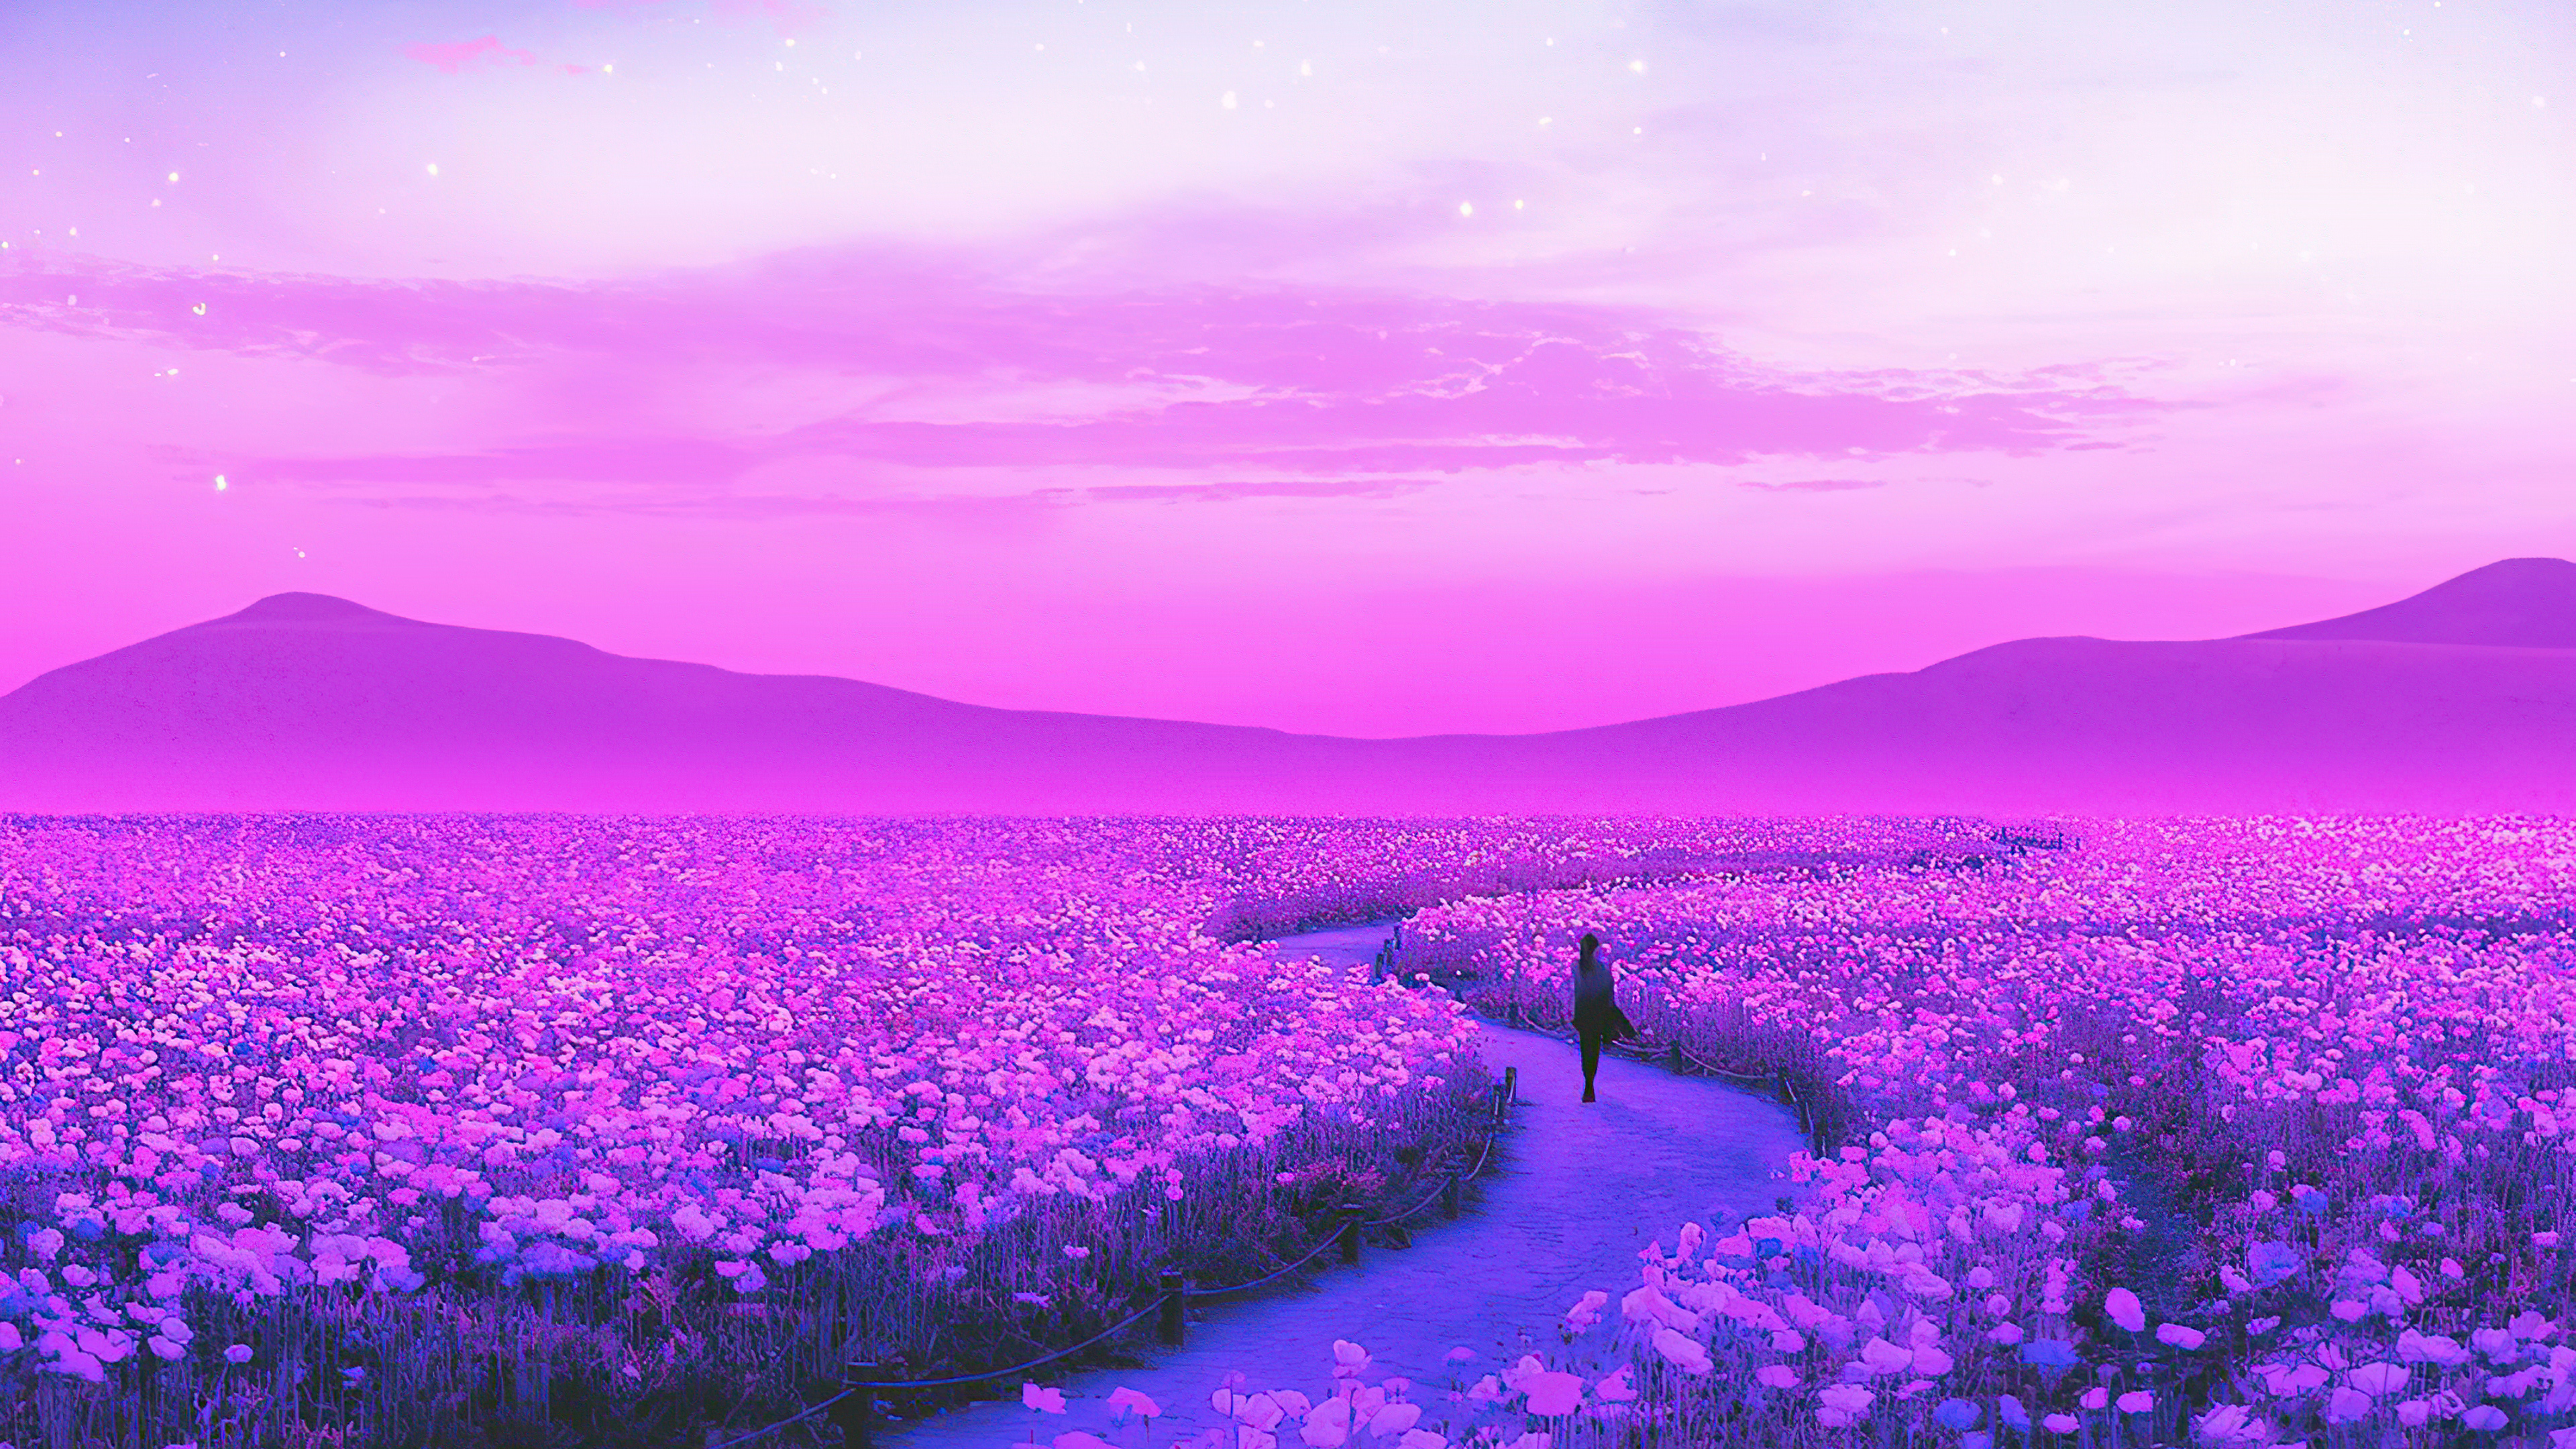 day dreaming lavender field 1596932265 - Day Dreaming Lavender Field -